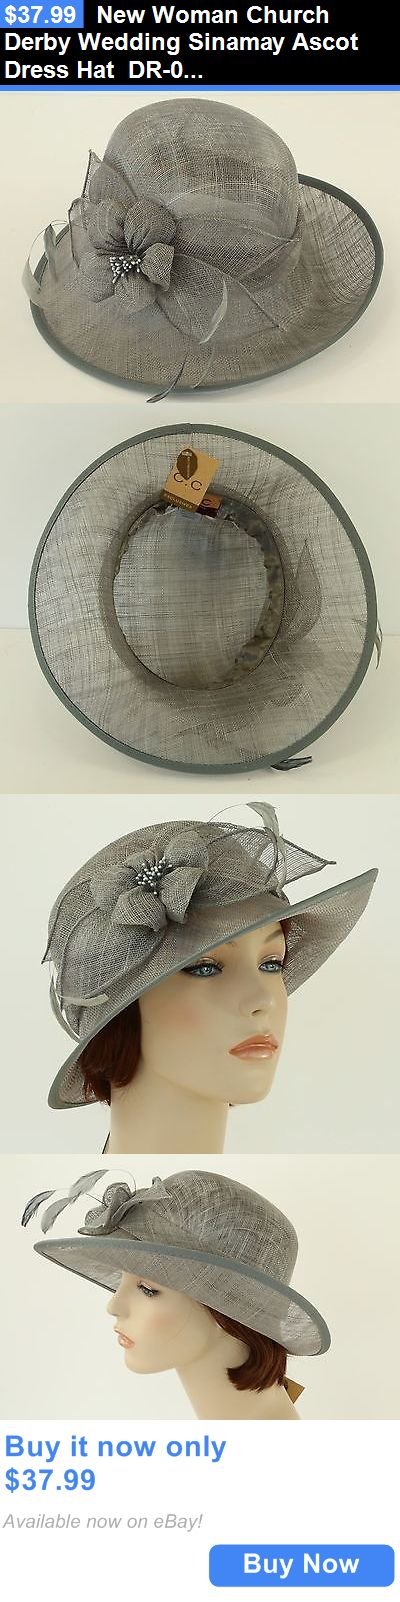 Women Formal Hats: New Woman Church Derby Wedding Sinamay Ascot Dress Hat Dr-04 Gray BUY IT NOW ONLY: $37.99